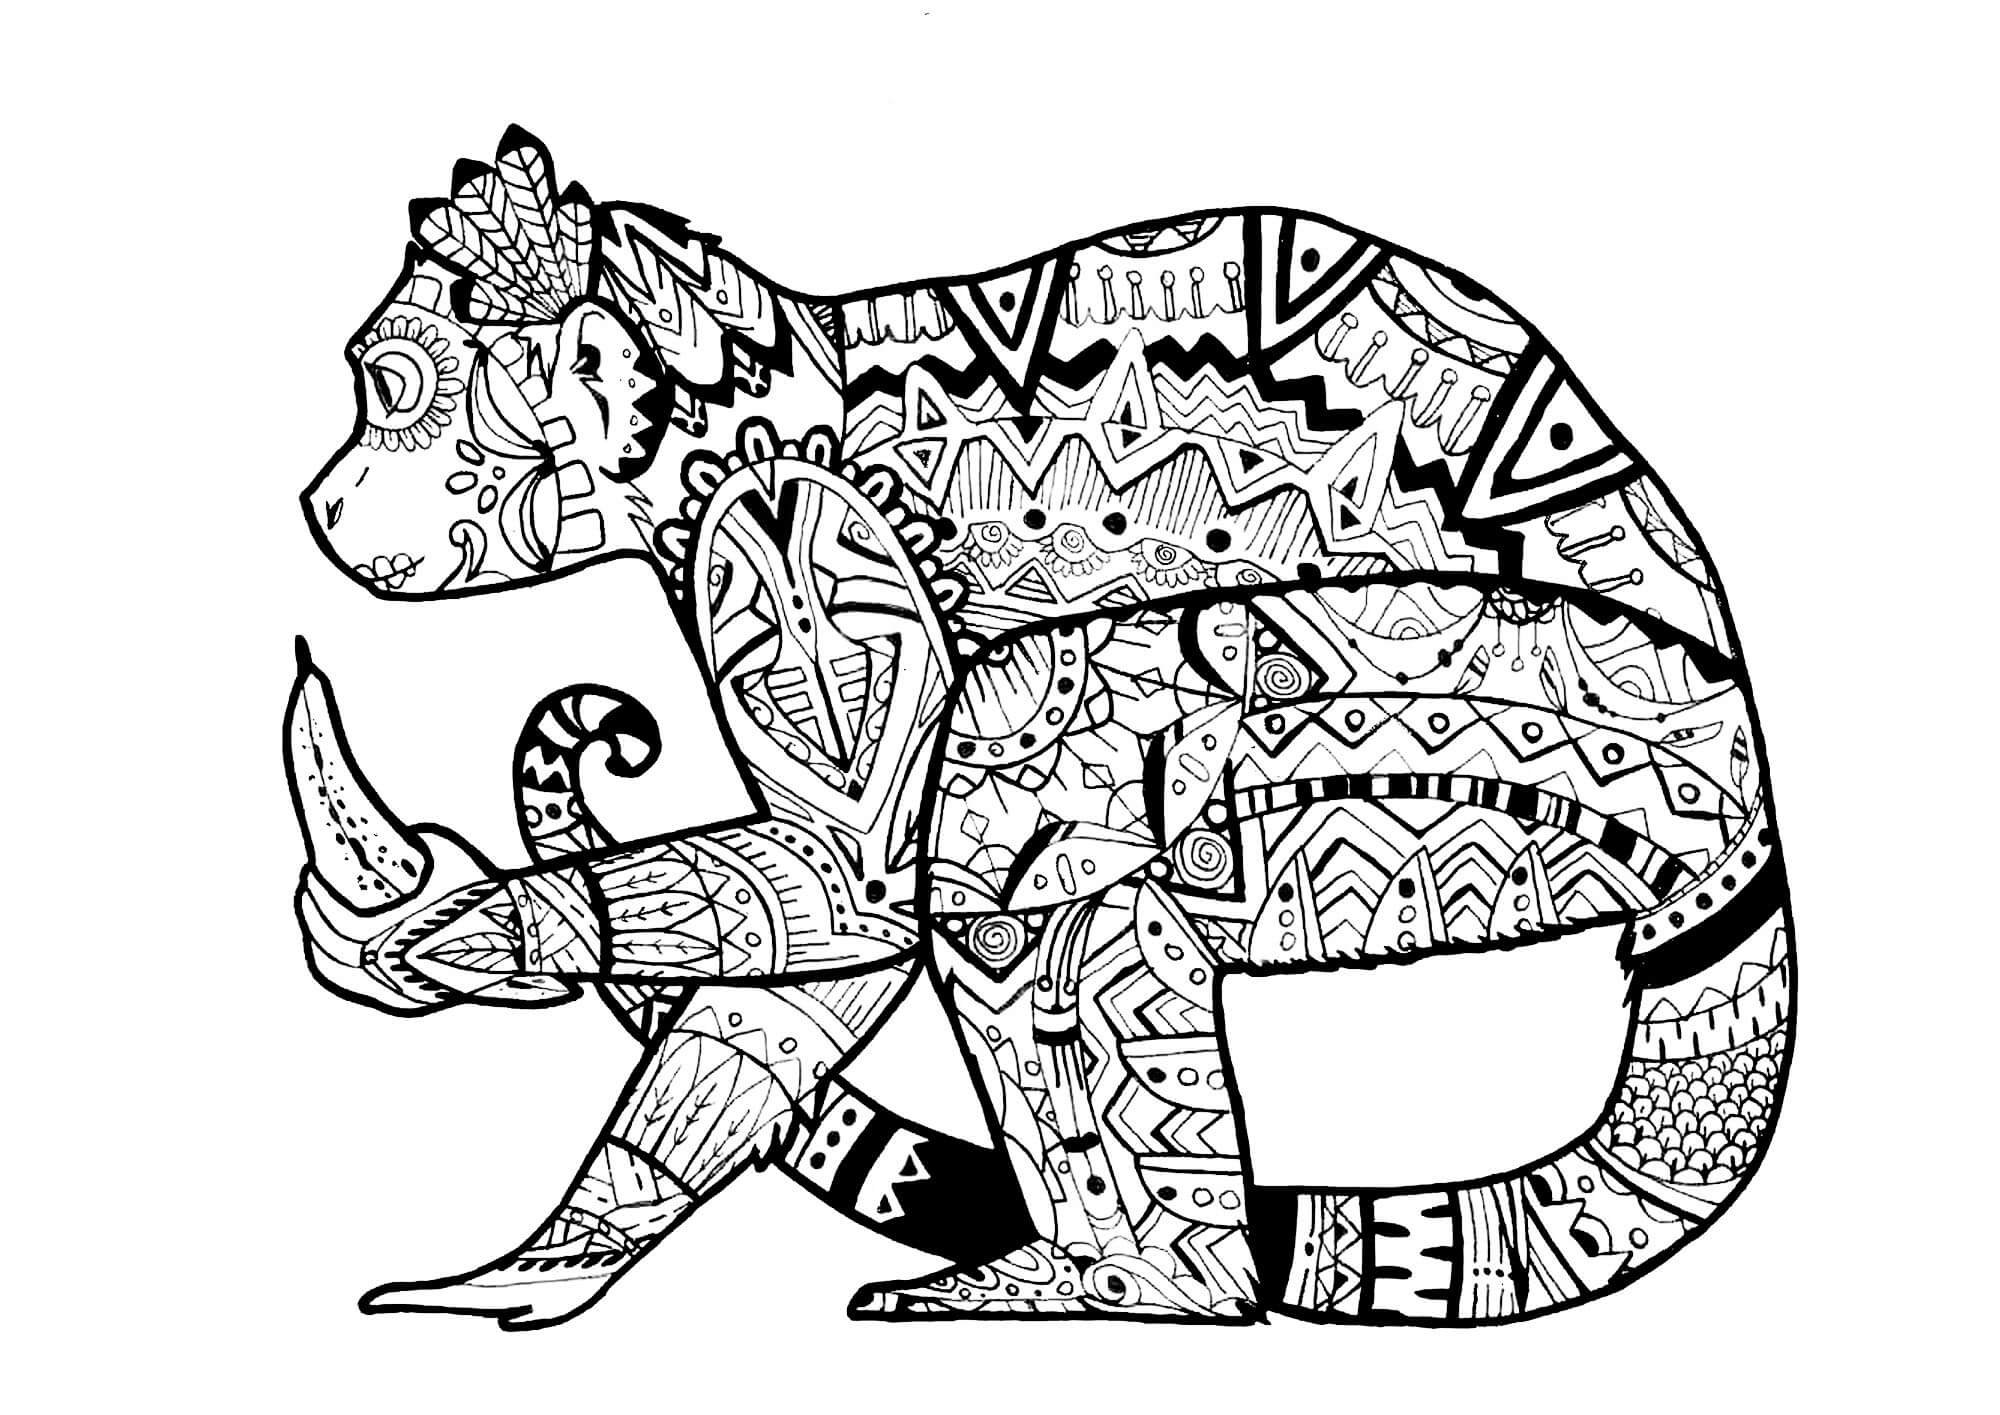 difficult coloring pages for adults free hard coloring pages for adults printable to download adults difficult coloring pages for